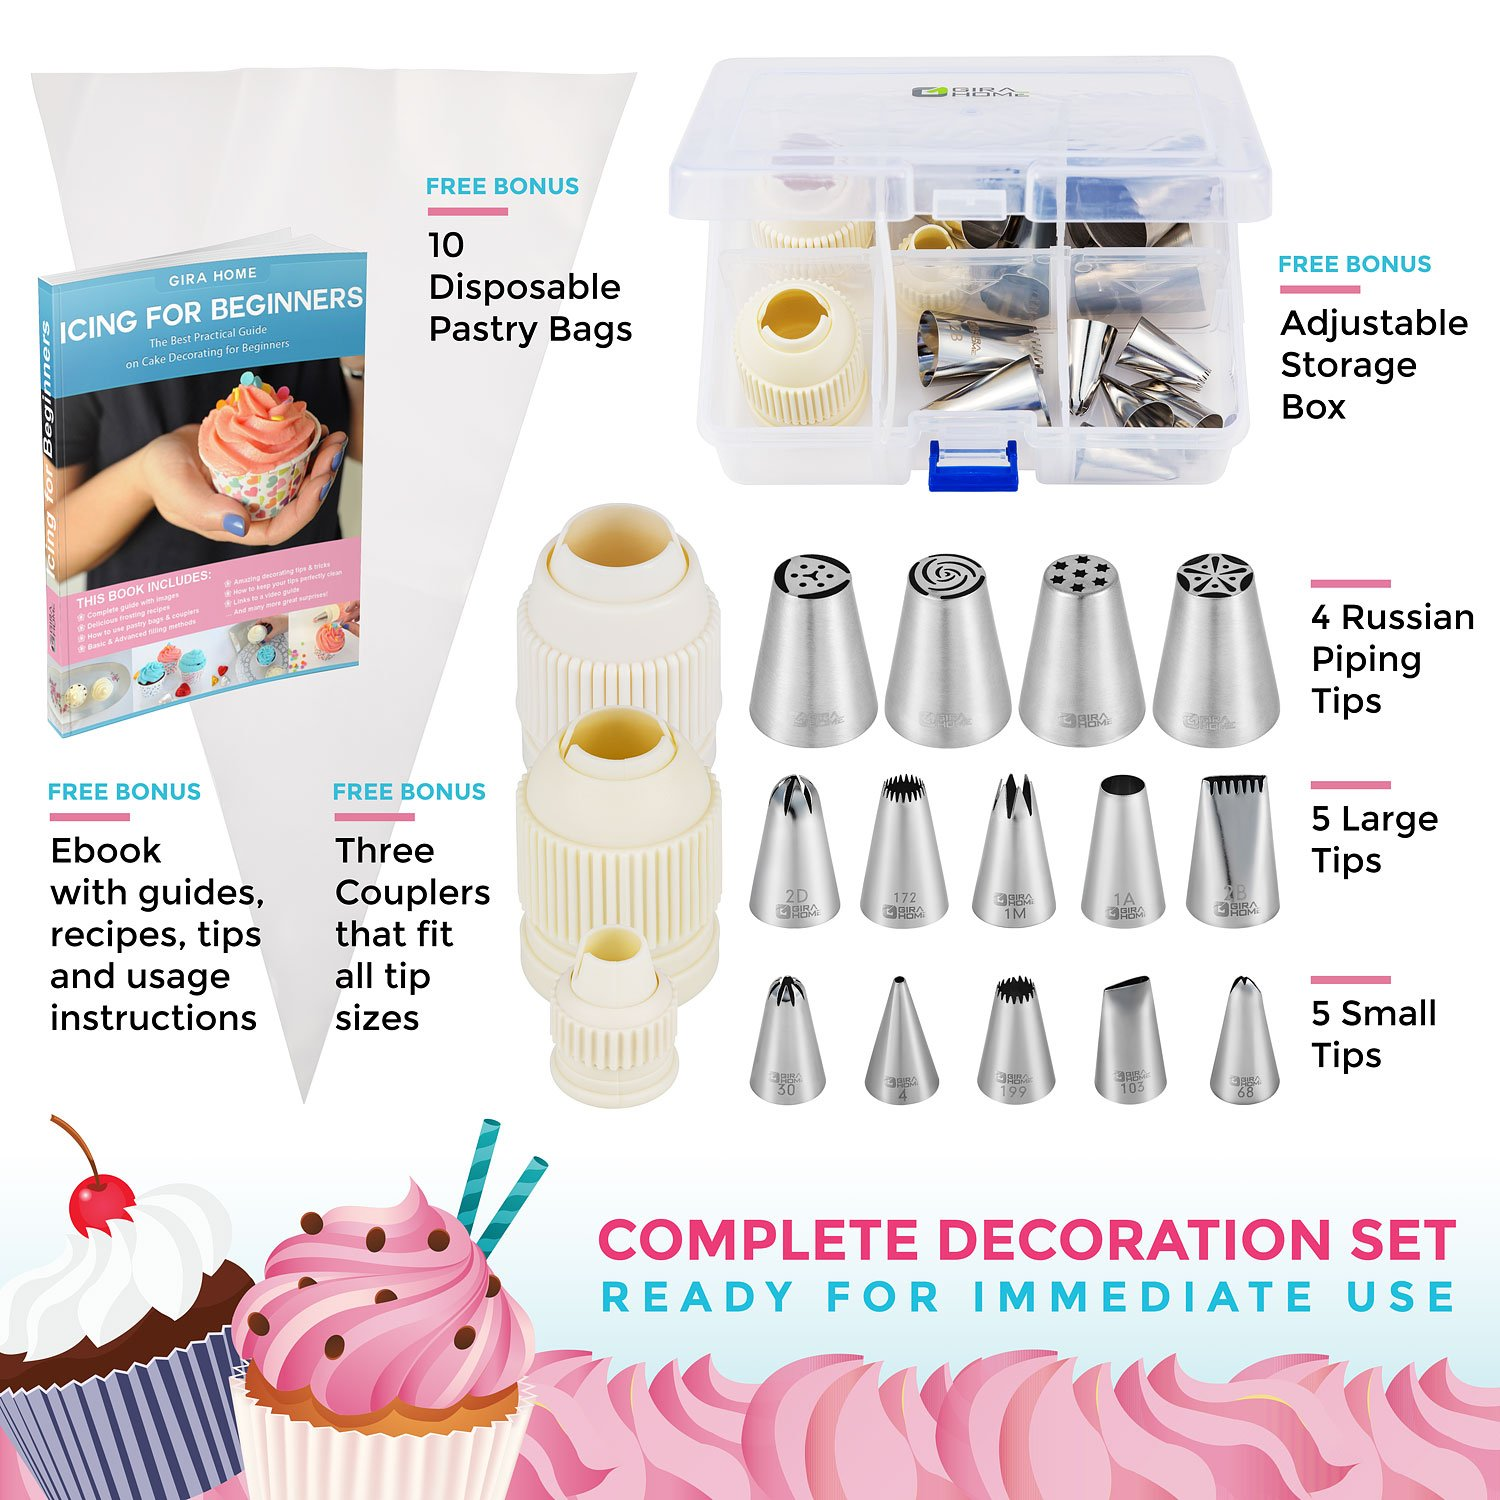 28-Pcs Premium Cake and Cupcake Decorating Kit+our Exclusive eBook Icing For Beginners, The practical guide to Cake Decorating, 14 Professional Piping Tips, 10 Pastry Bags, 3 Couplers and Storage Case